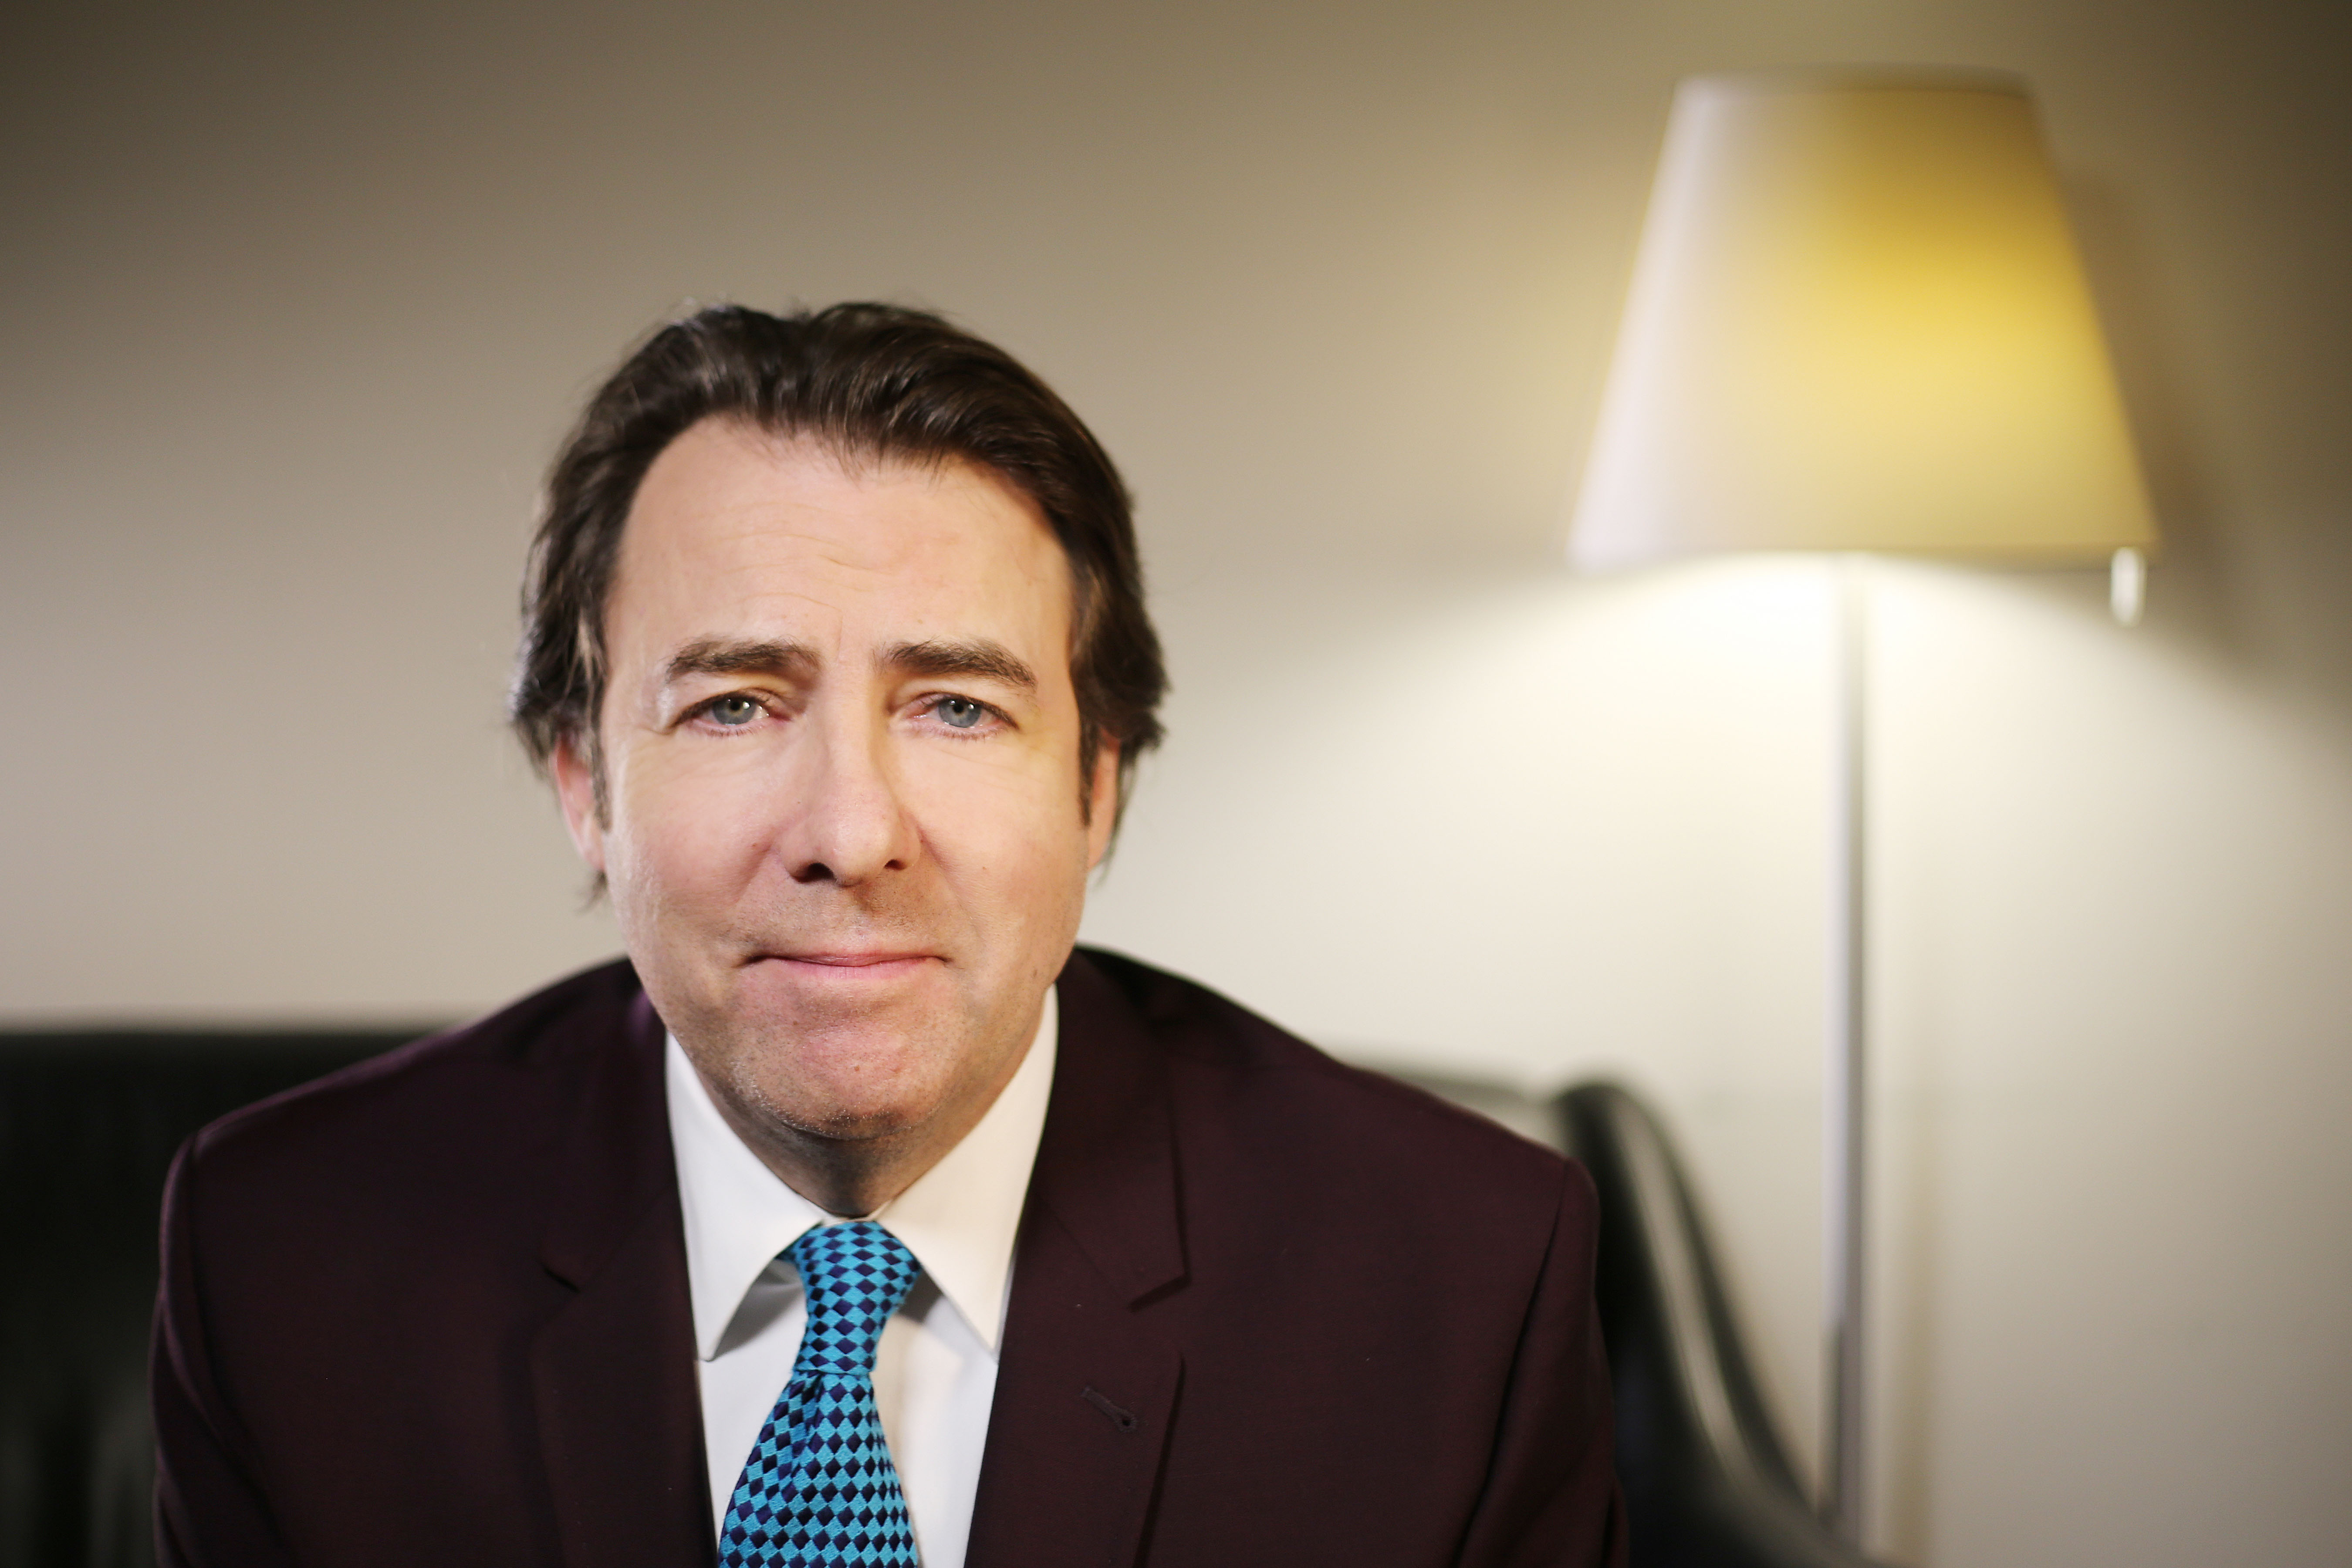 Jonathan ross top spank